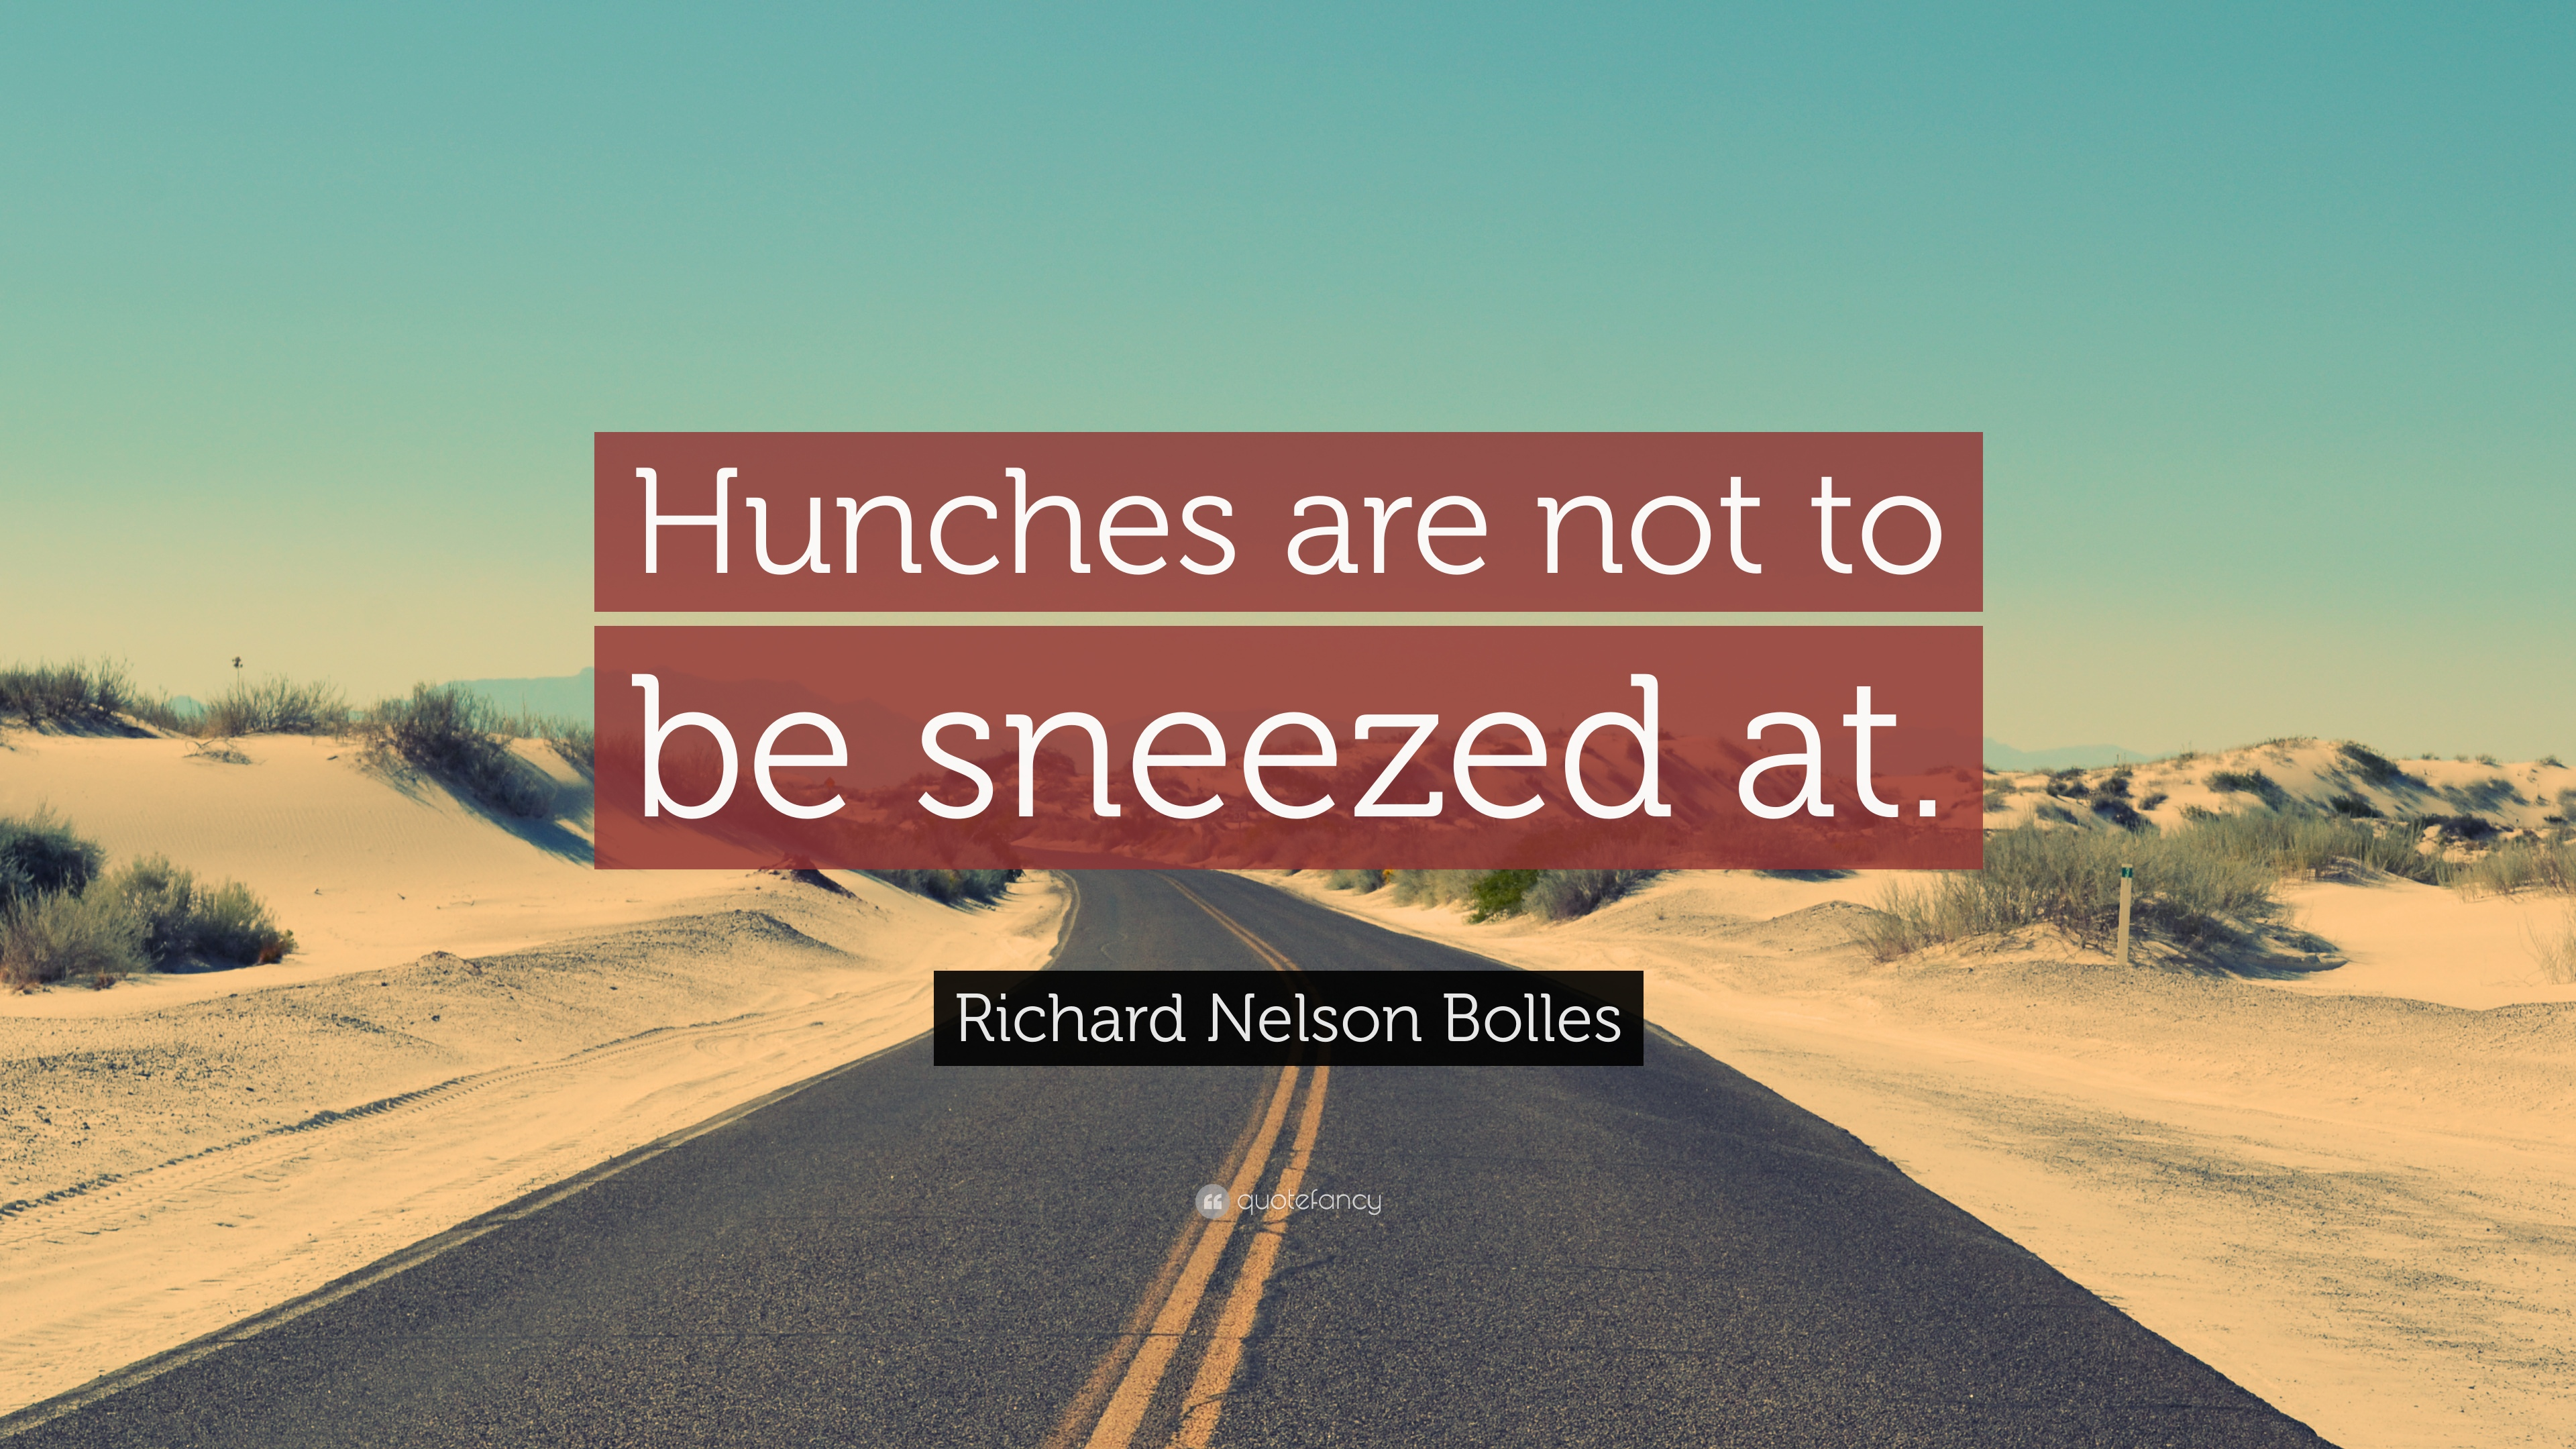 richard nelson bolles quotes 8 quotefancy richard nelson bolles quote hunches are not to be sneezed at